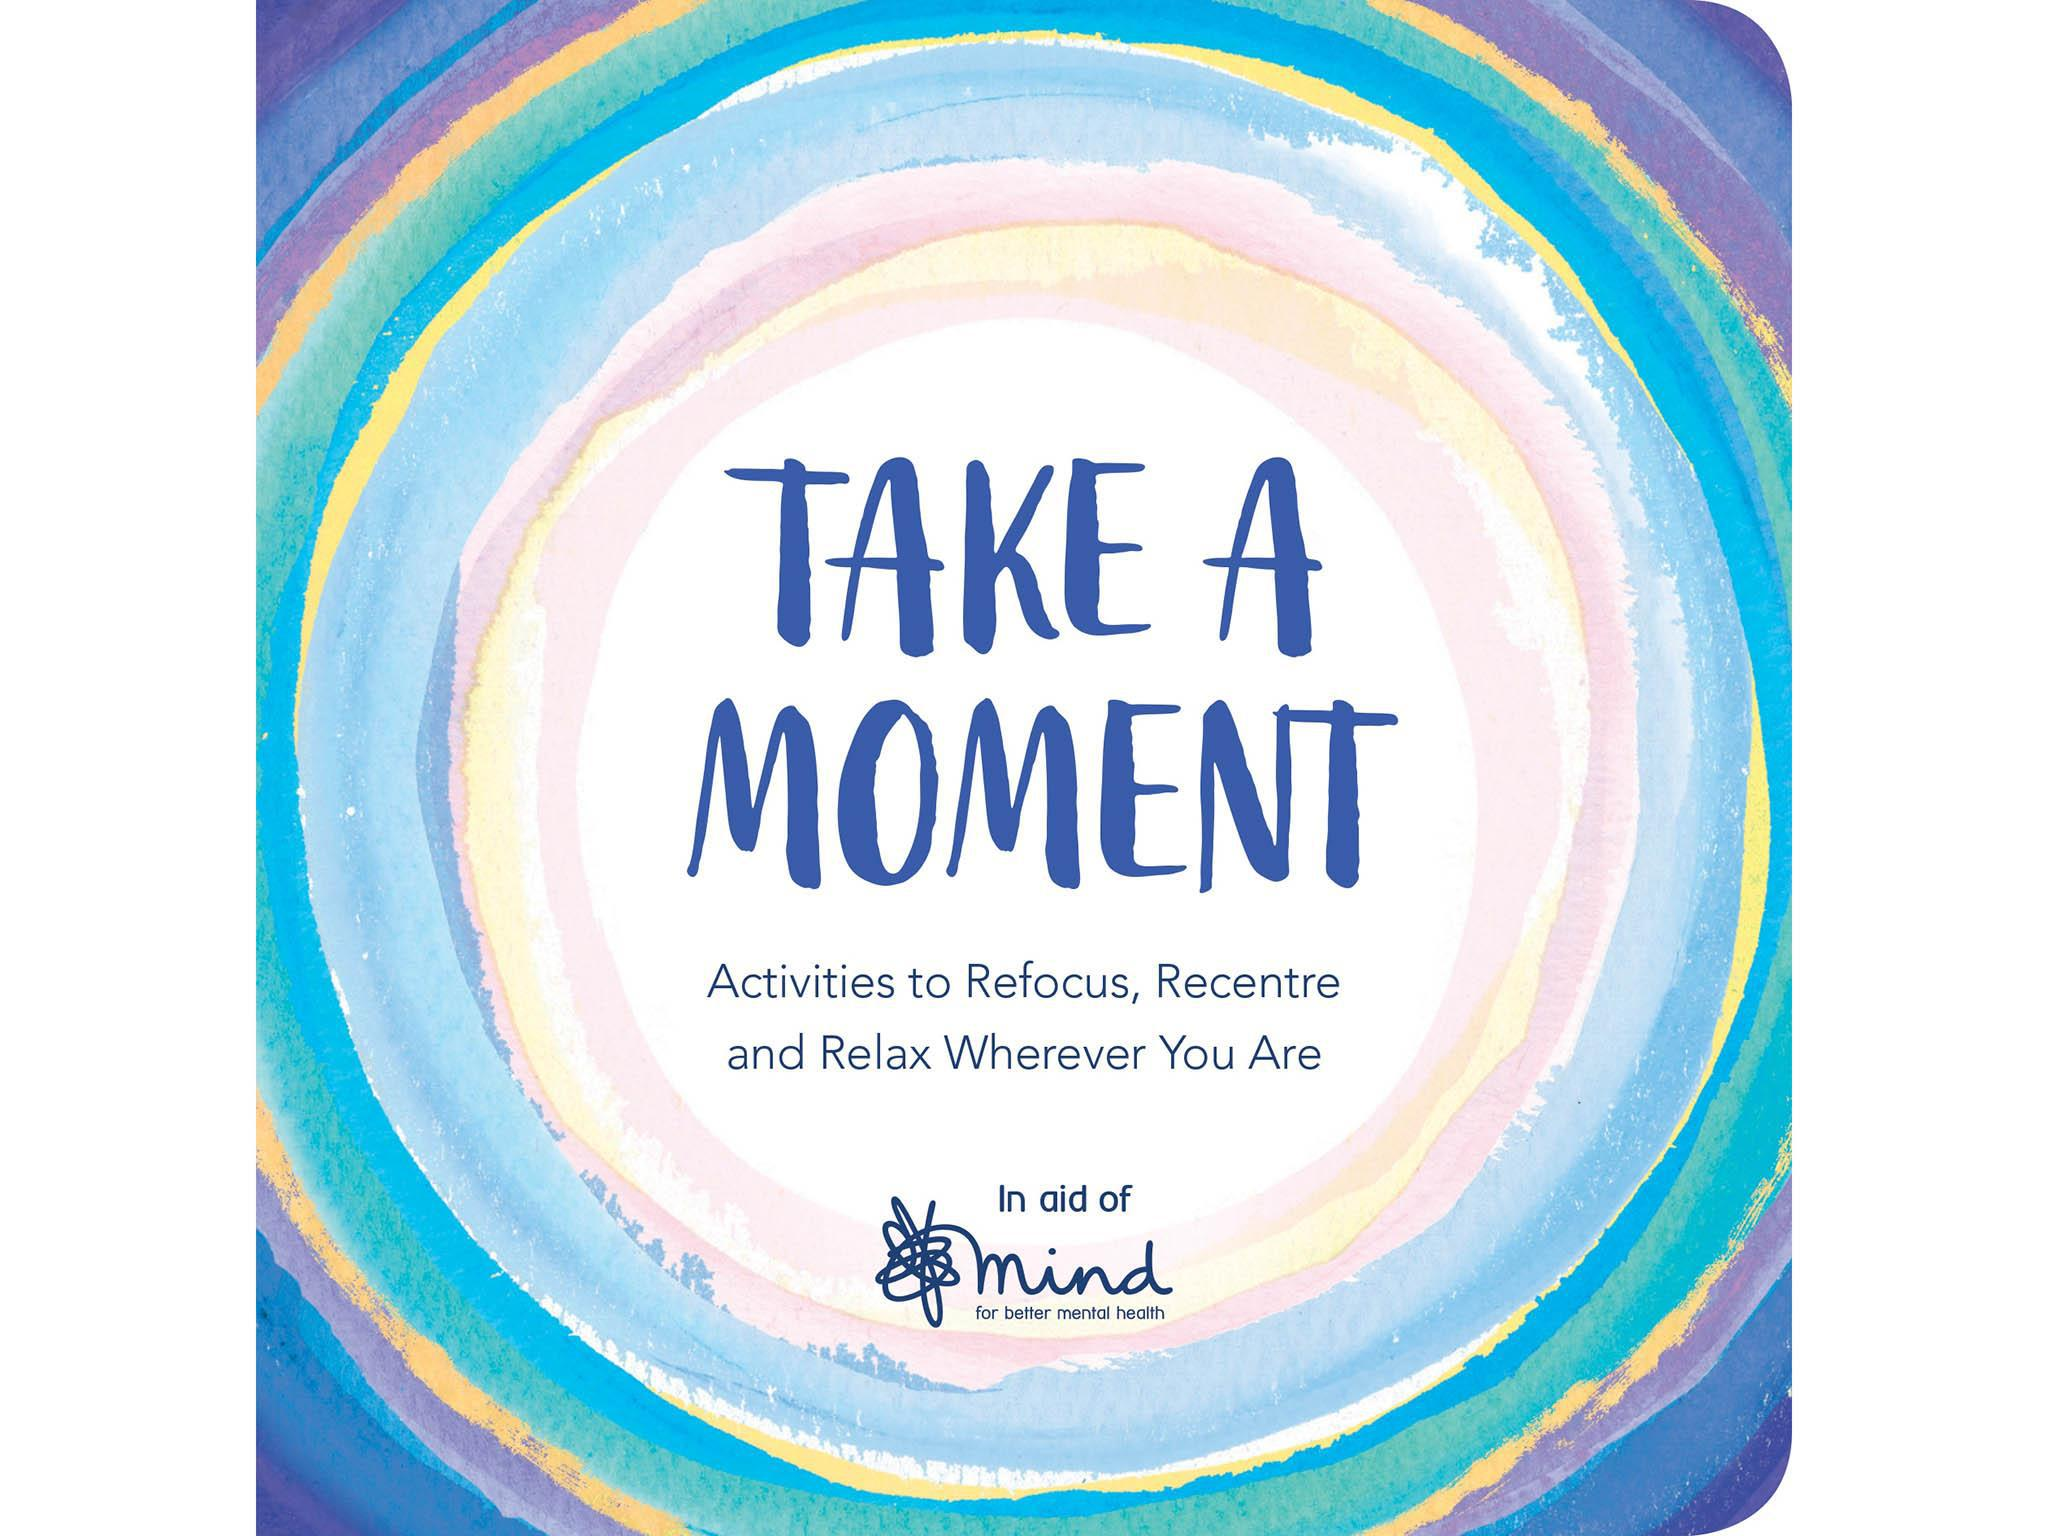 Delve into this guide to developing your own methods for managing stress and anxietyWaterstones